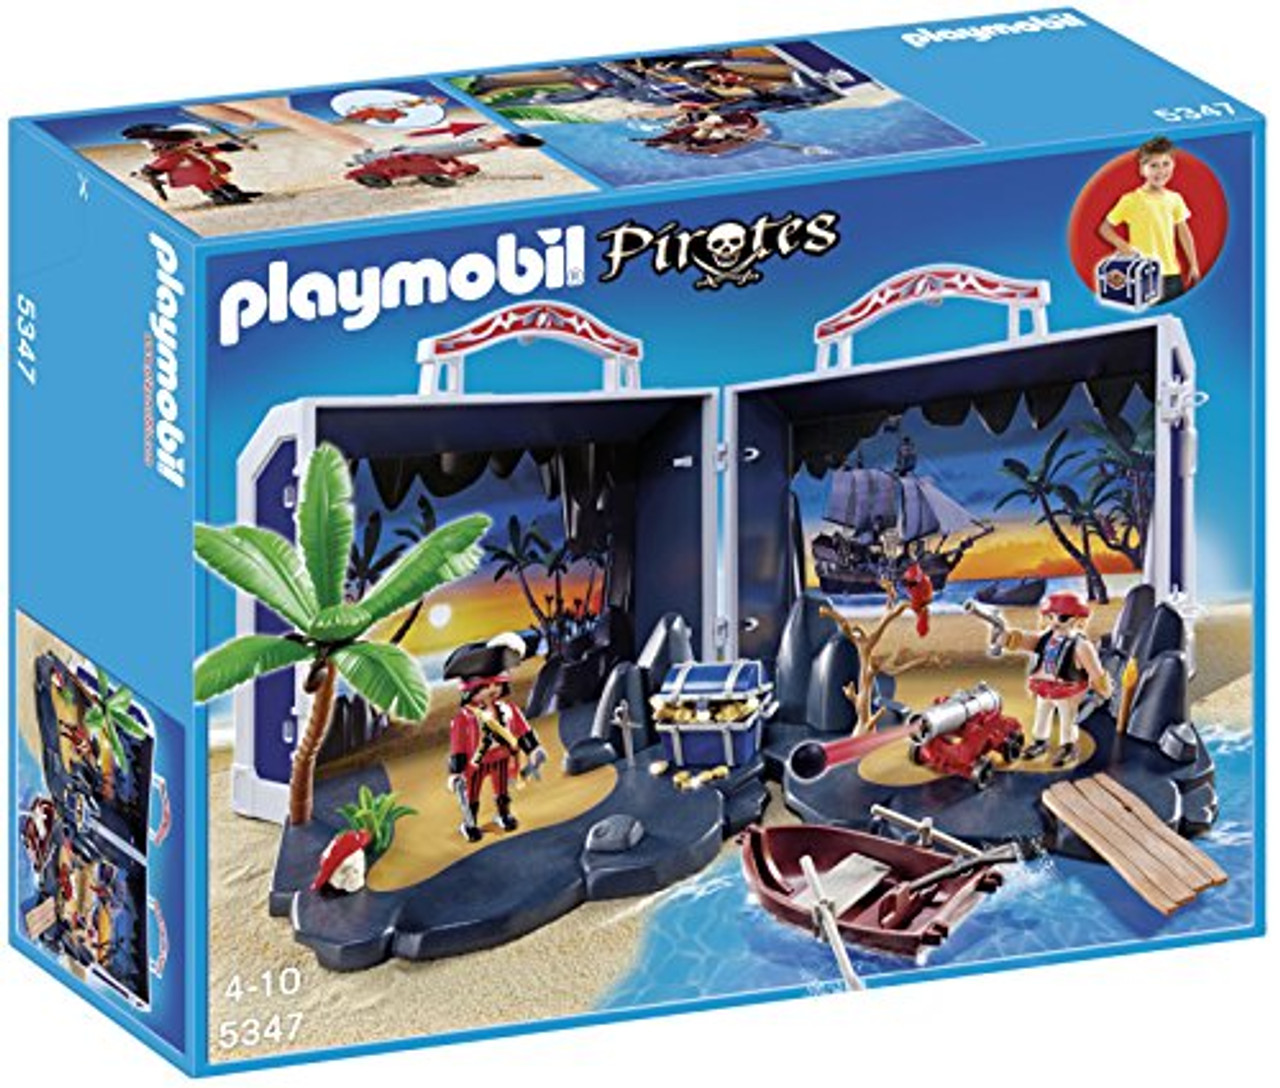 Calendrier De Lavent Playmobil Pirates.Playmobil Pirate Treasure Chest Playset